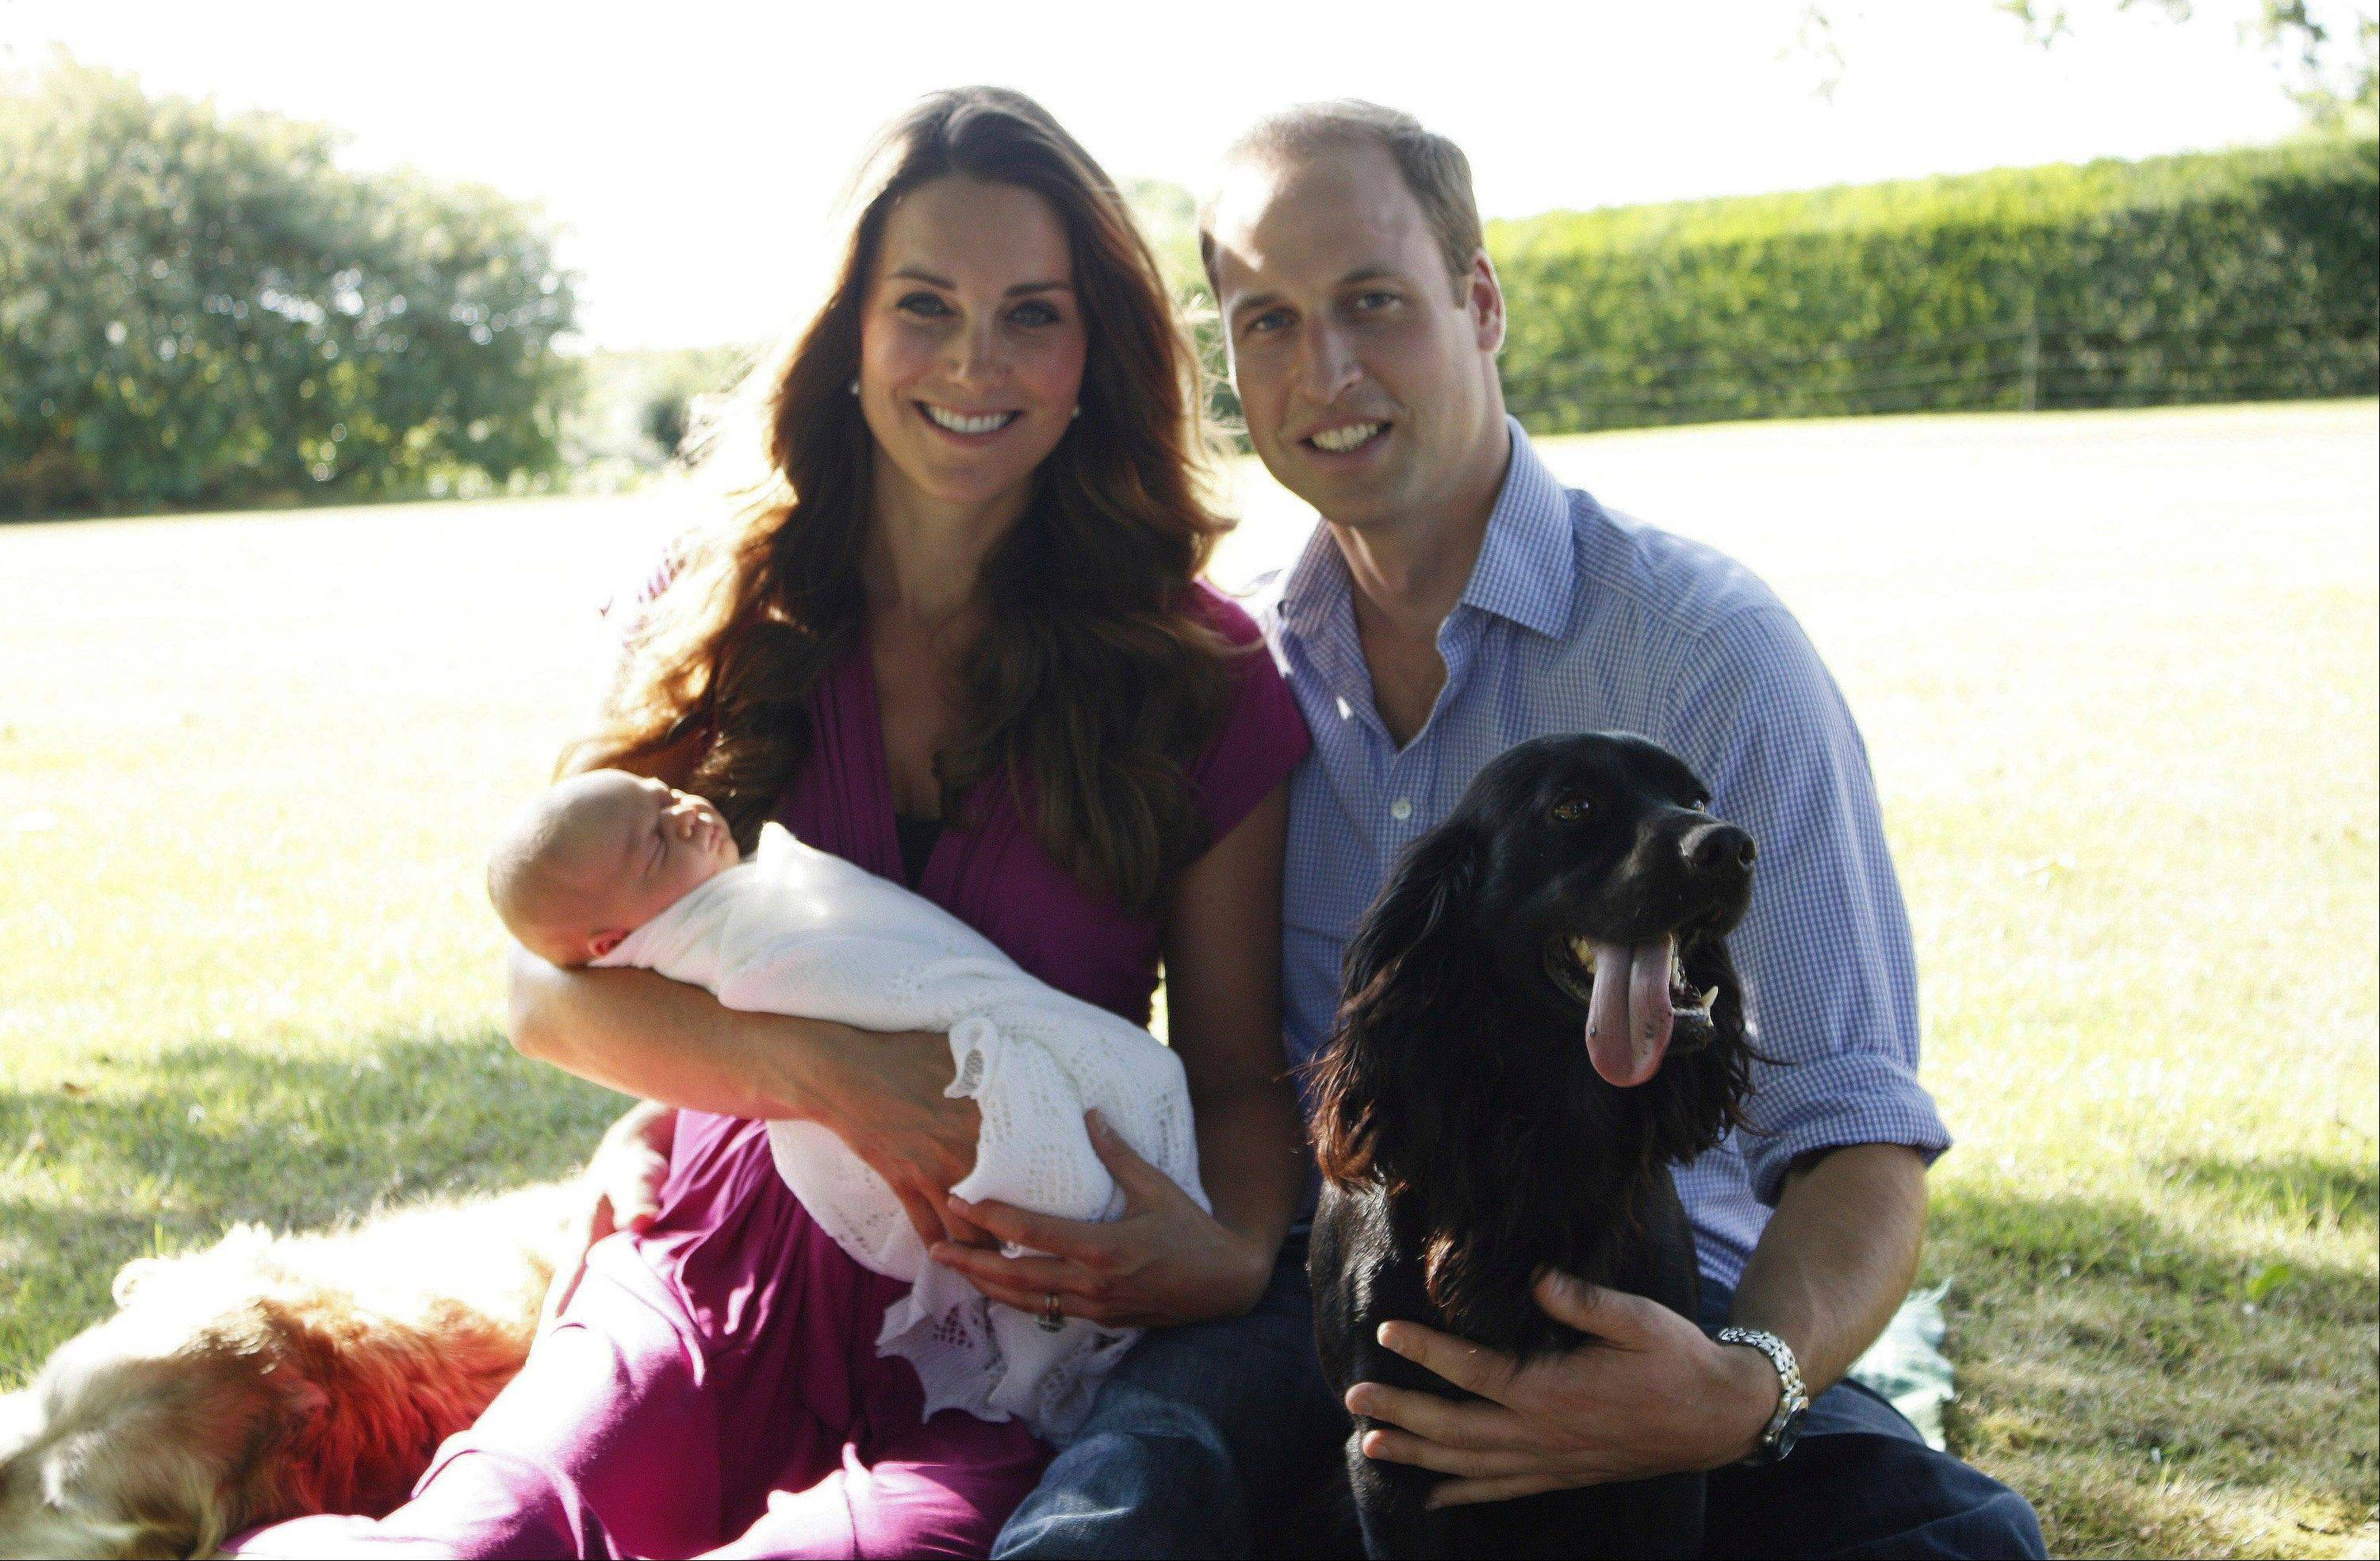 This image taken by Michael Middleton, the Duchess�s father, this month shows the Duke and Duchess of Cambridge with their son, Prince George, in the garden of the Middleton family home in Bucklebury, England, with Tilly the retriever, seen left, a Middleton family pet, and Lupo, the couple�s cocker spaniel.